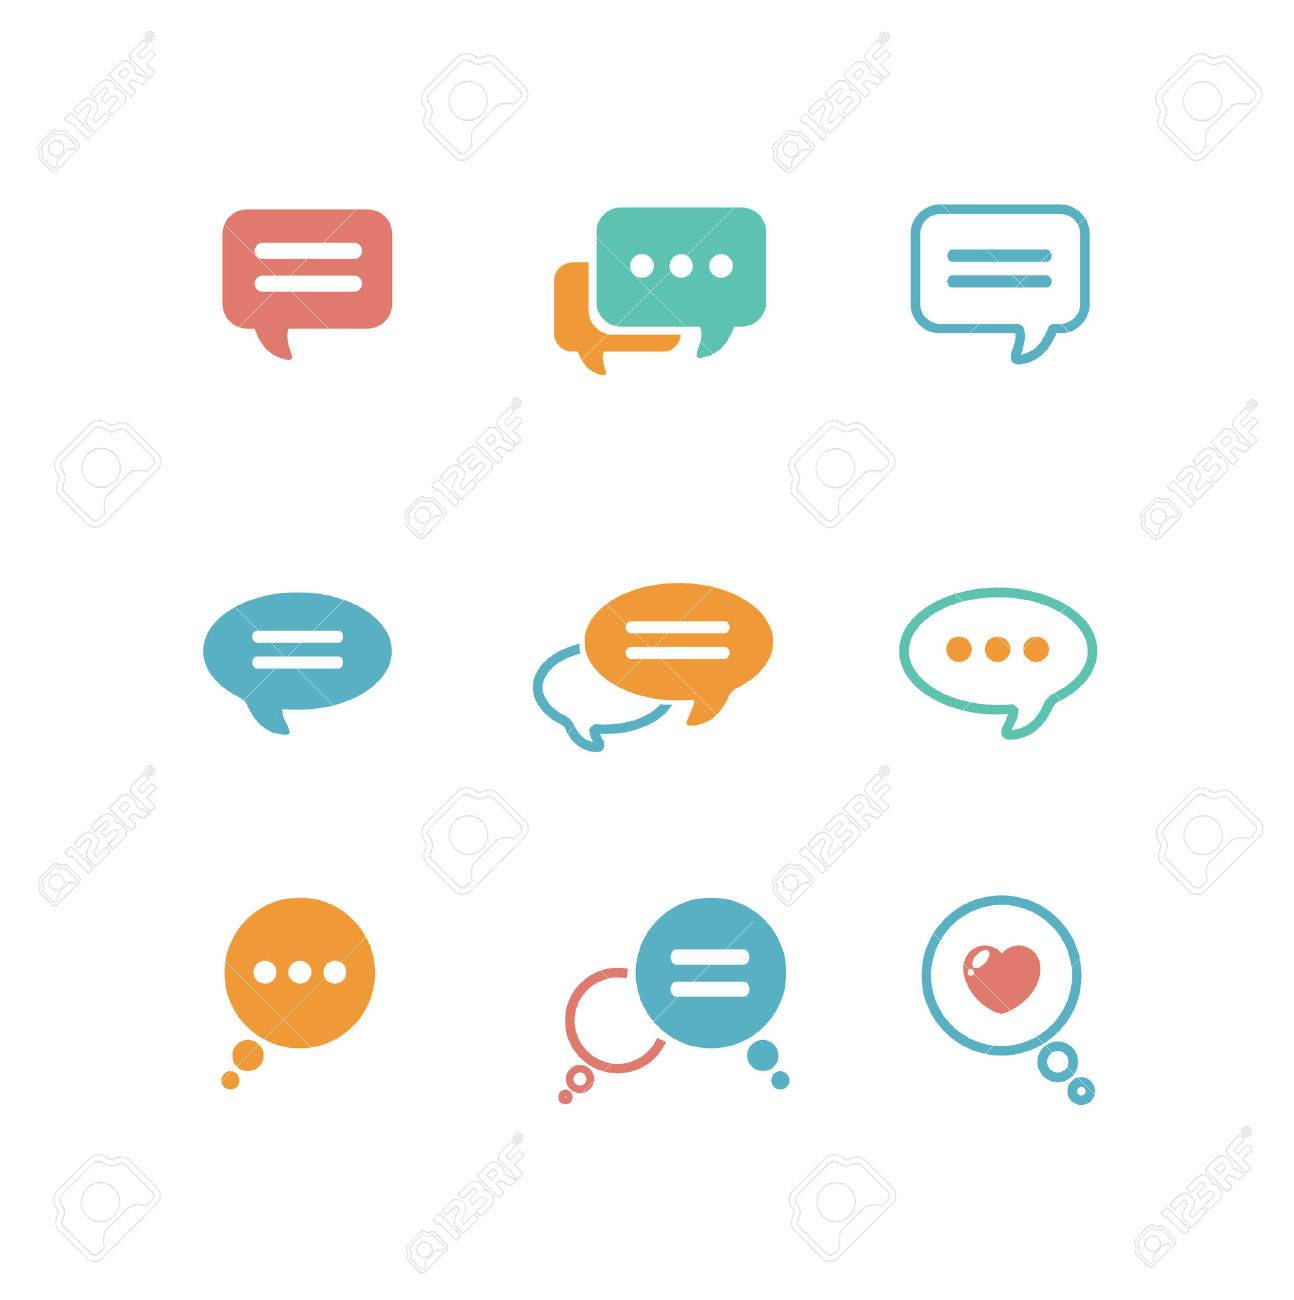 Vector illustration Speech bubble icon set on white background isolated. Flat design style Stock Vector - 43321315